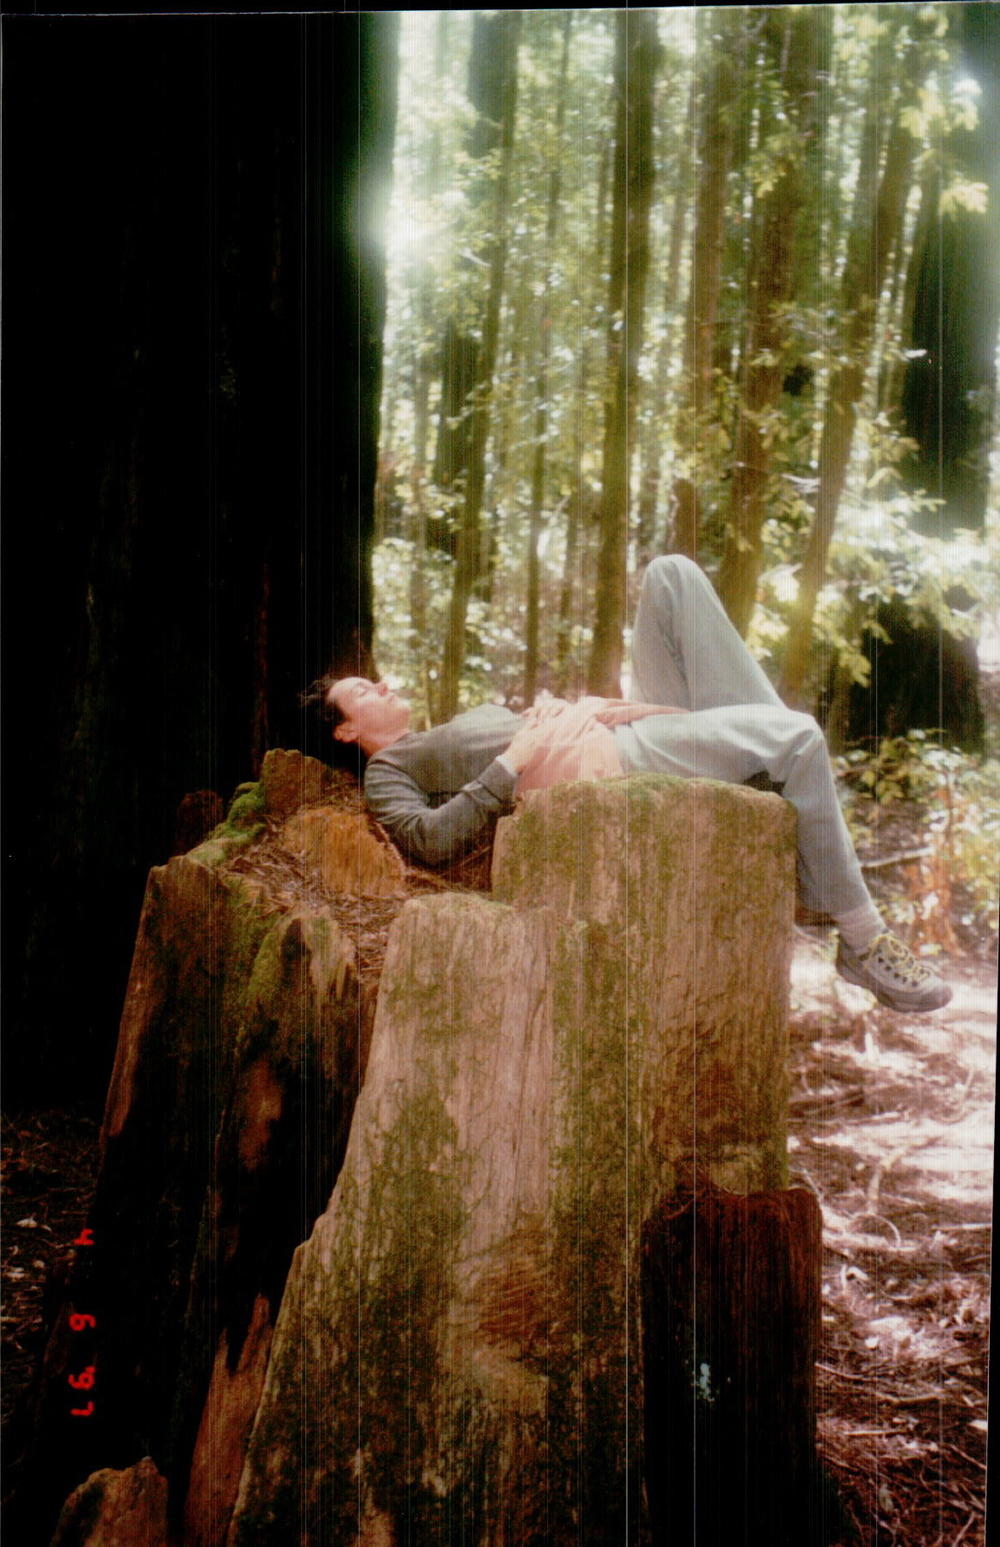 Beloved in California Redwoods